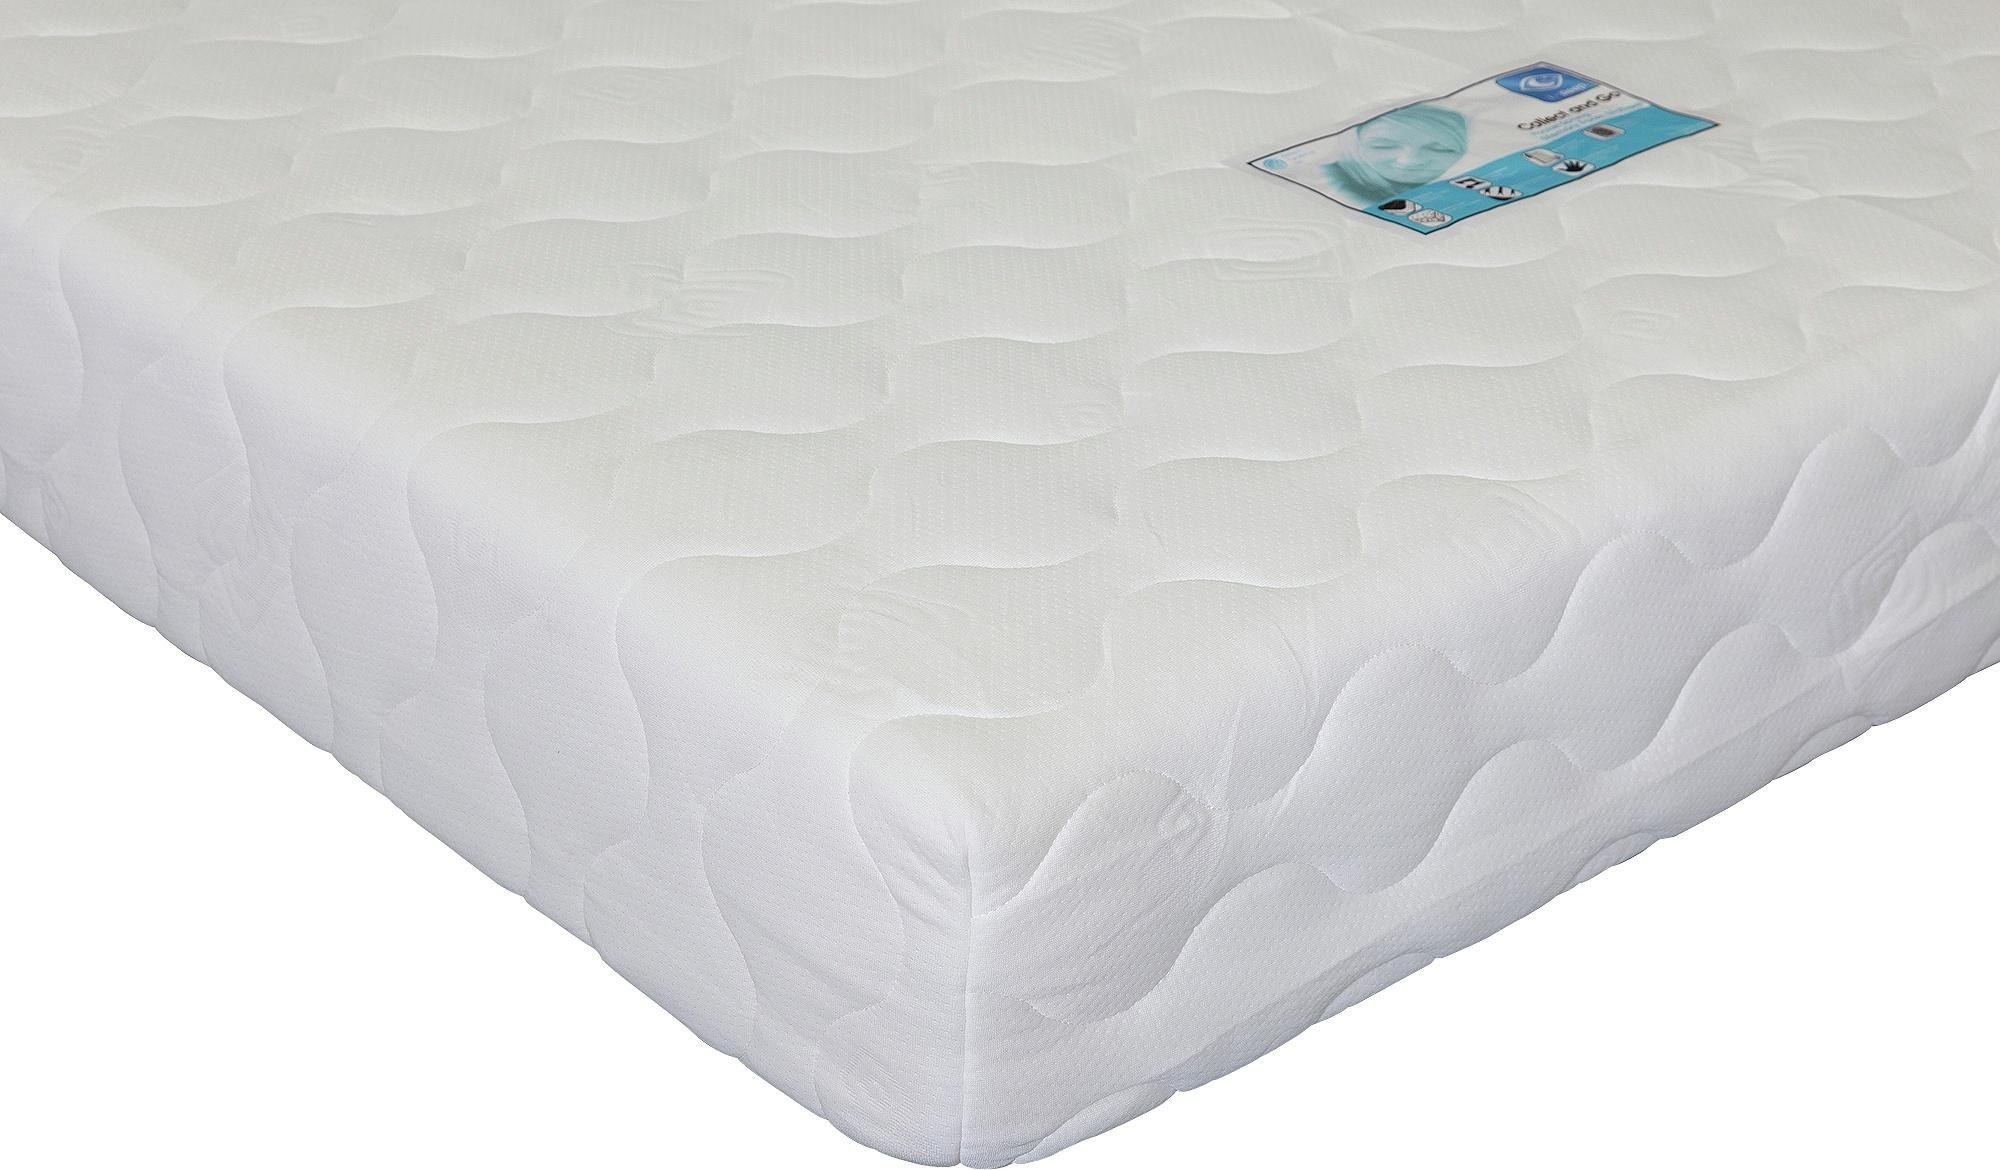 Argos Home Collect & Go Pocket Memory Foam Kingsize Mattress